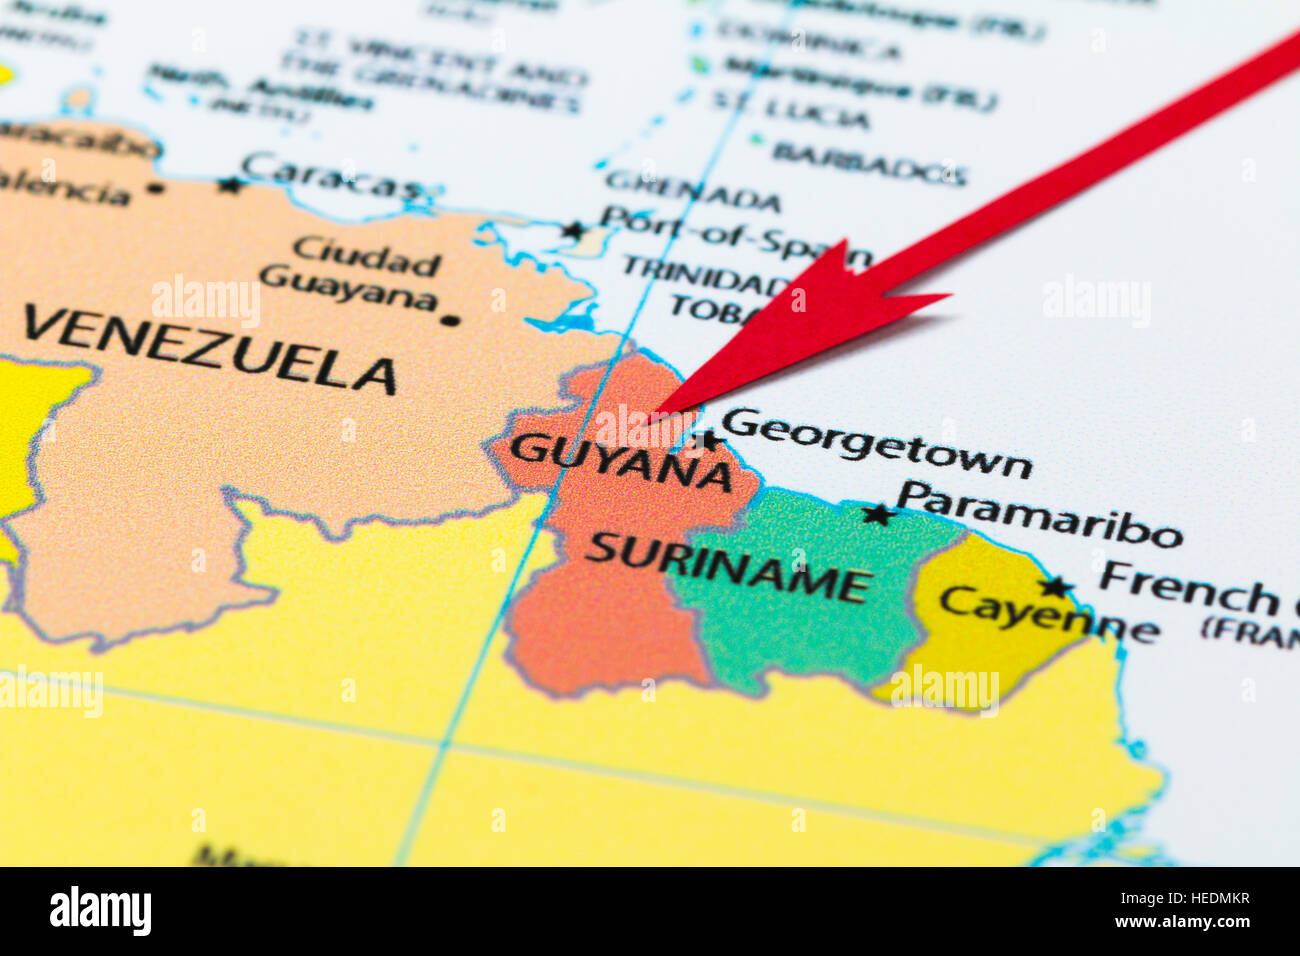 how to call guyana for free